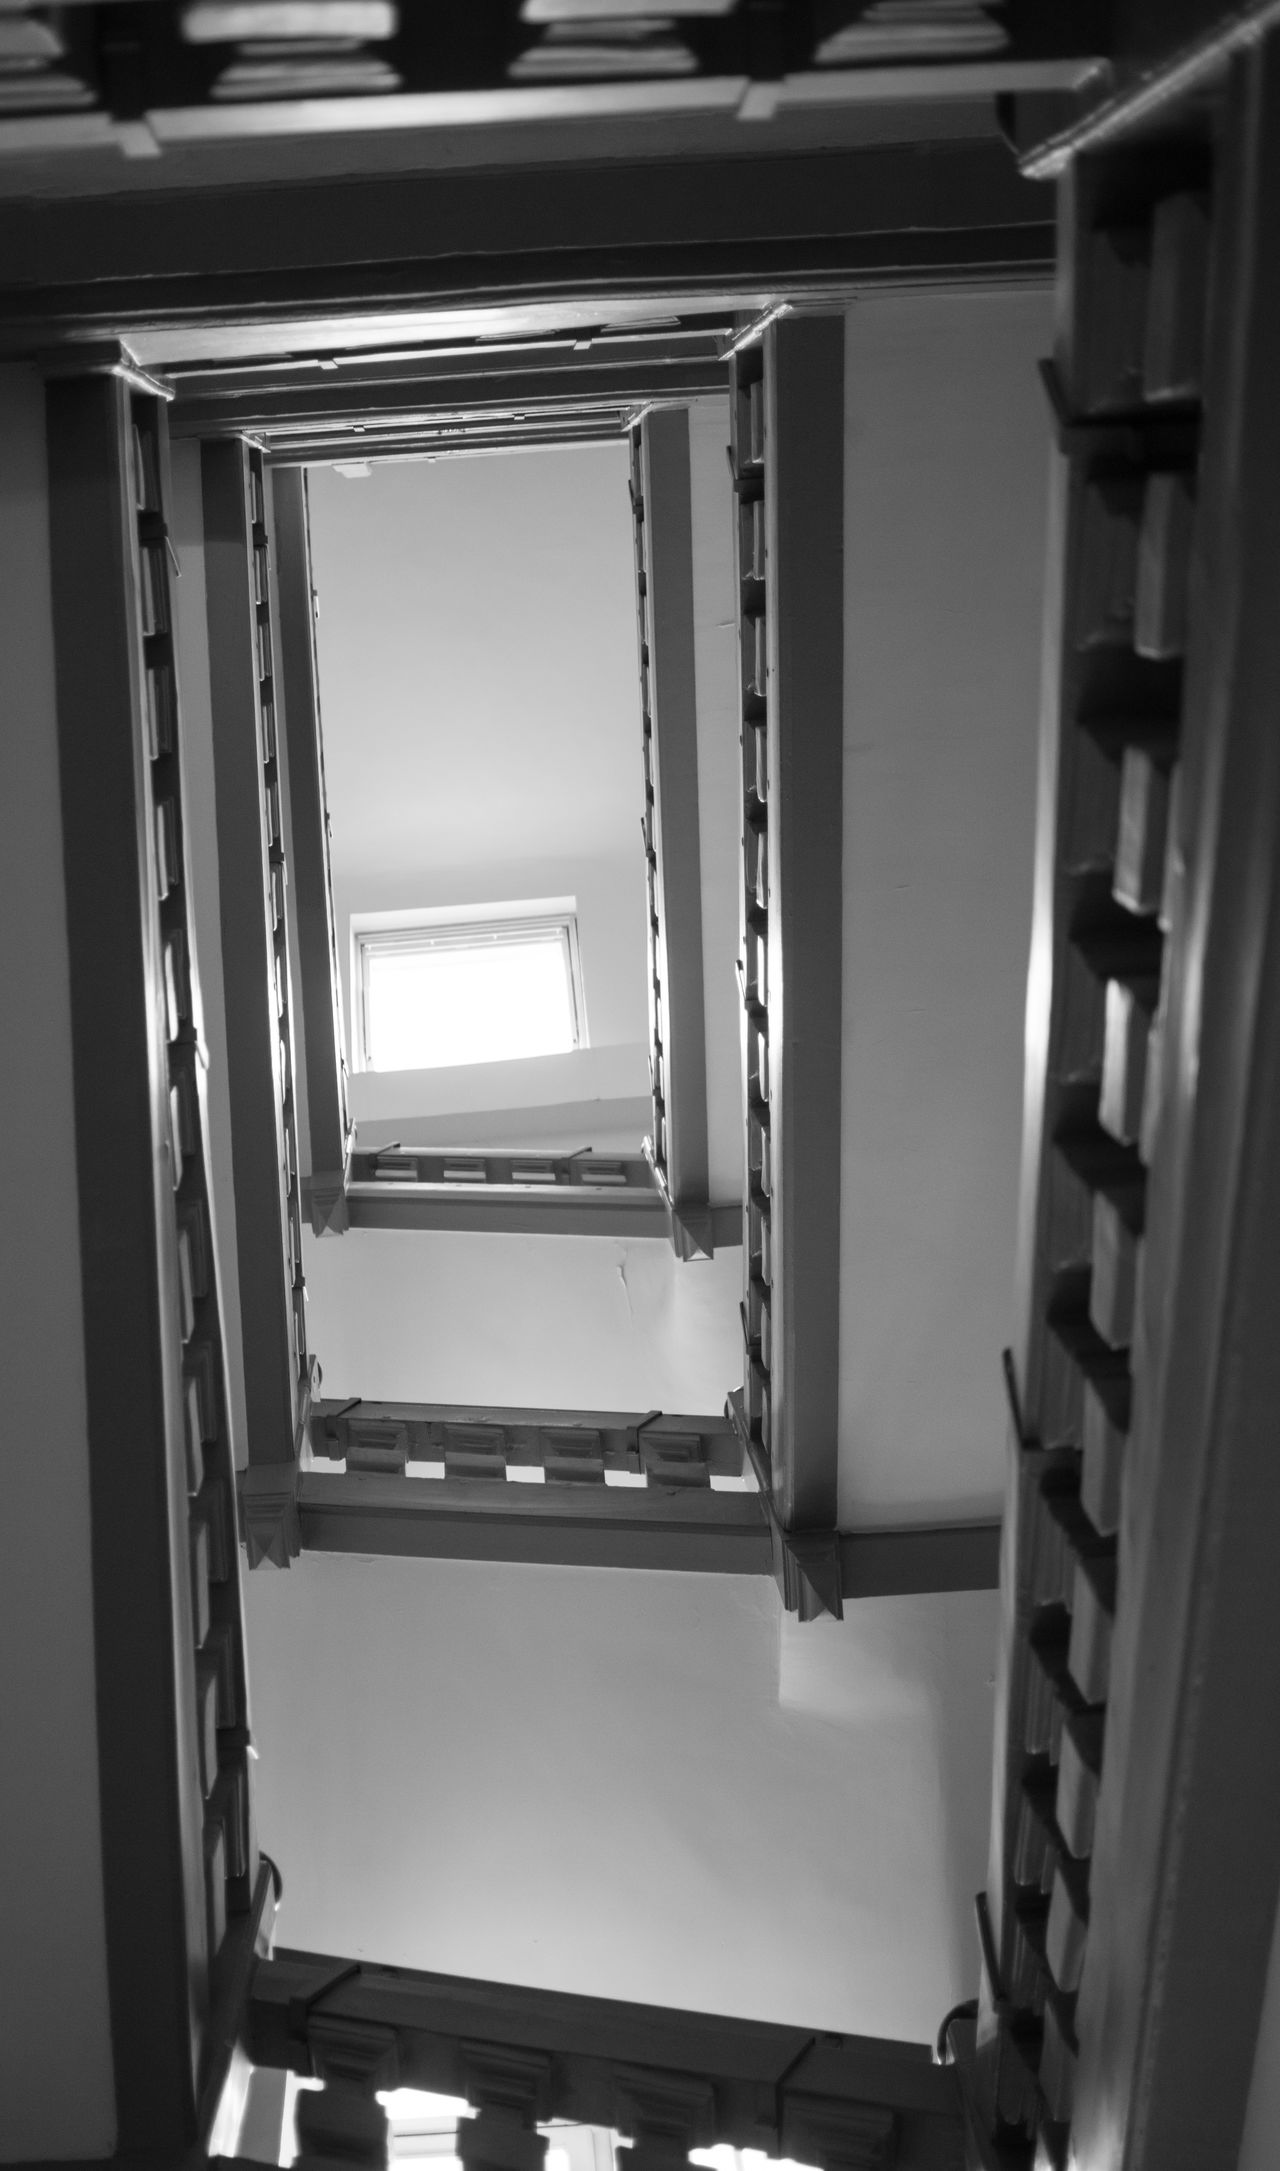 Architecture Blackandwhite Built Structure Check This Out Day Eye For Photography Eye4photography  EyeEm EyeEm Best Shots EyeEm Best Shots - Black + White EyeEm Gallery EyeEmBestPics Hello World Indoors  Invalides  No People Paris Railing Spiral Staircase Stairs Steps And Staircases